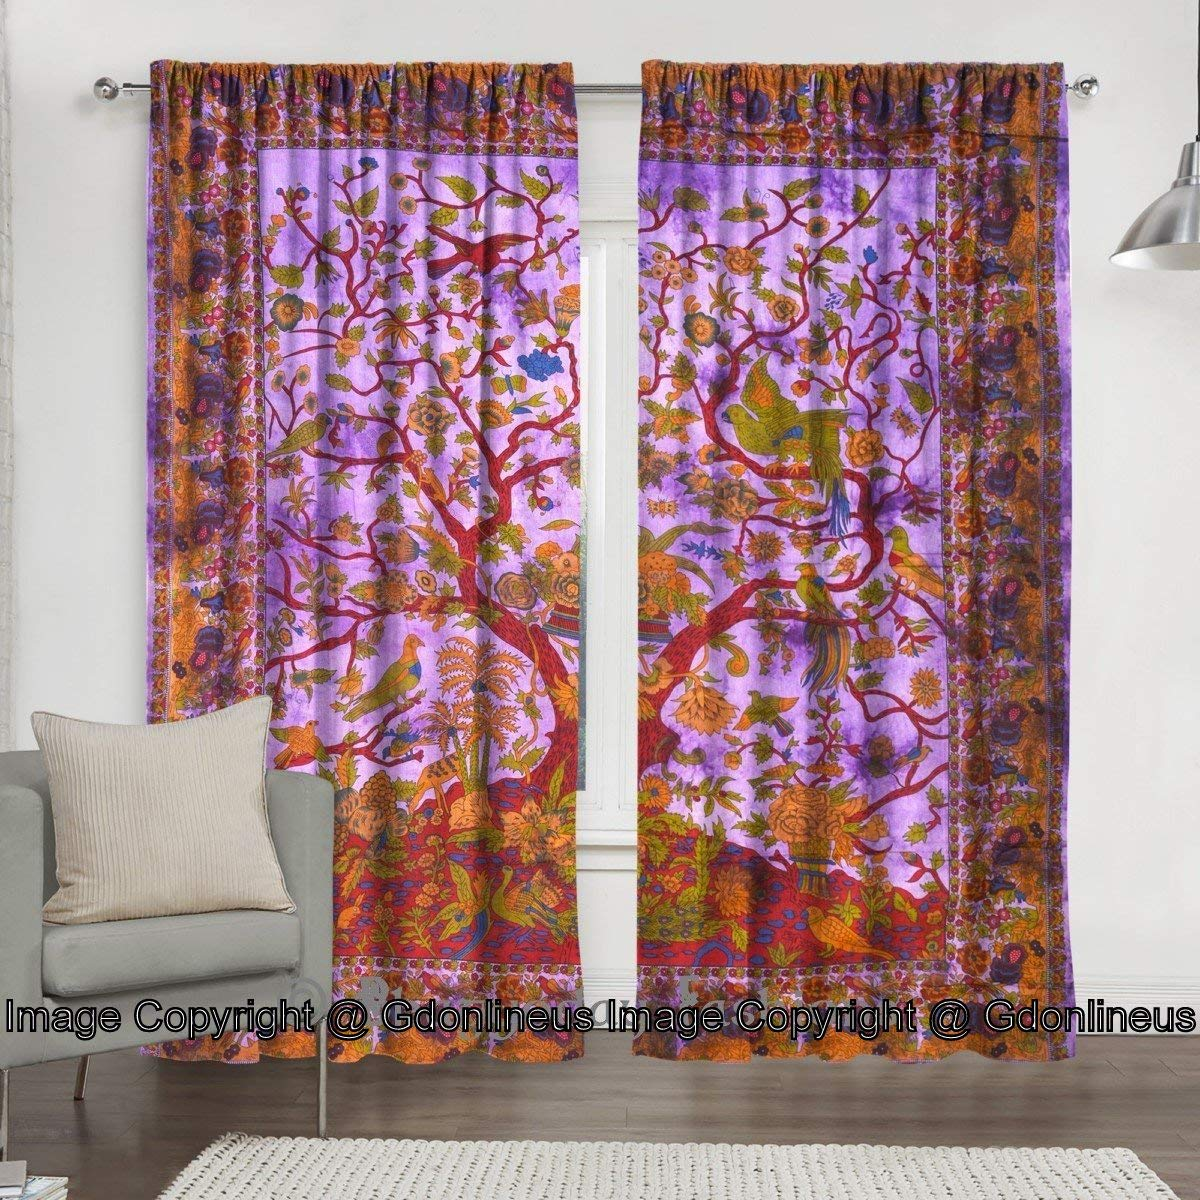 GDONLINE Turequoise Orange Tree of Life Curtain Wall Hanging Mandala Window Curtains Panels Bird Tapestry Hippie Bohemian Psychedelic